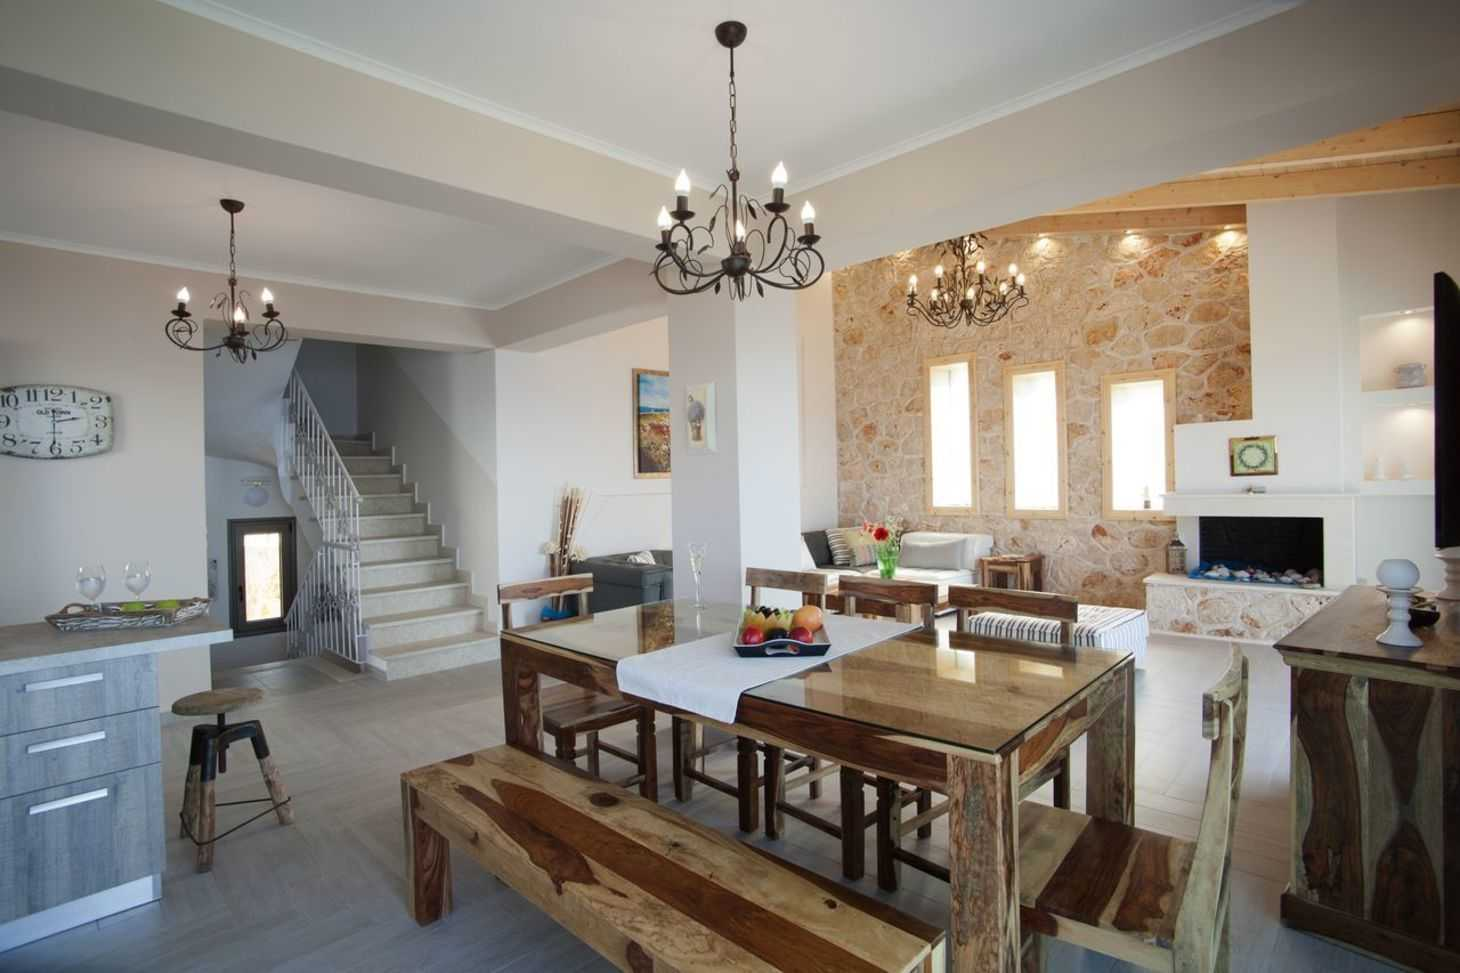 Villa Anemos kitchen.jpg